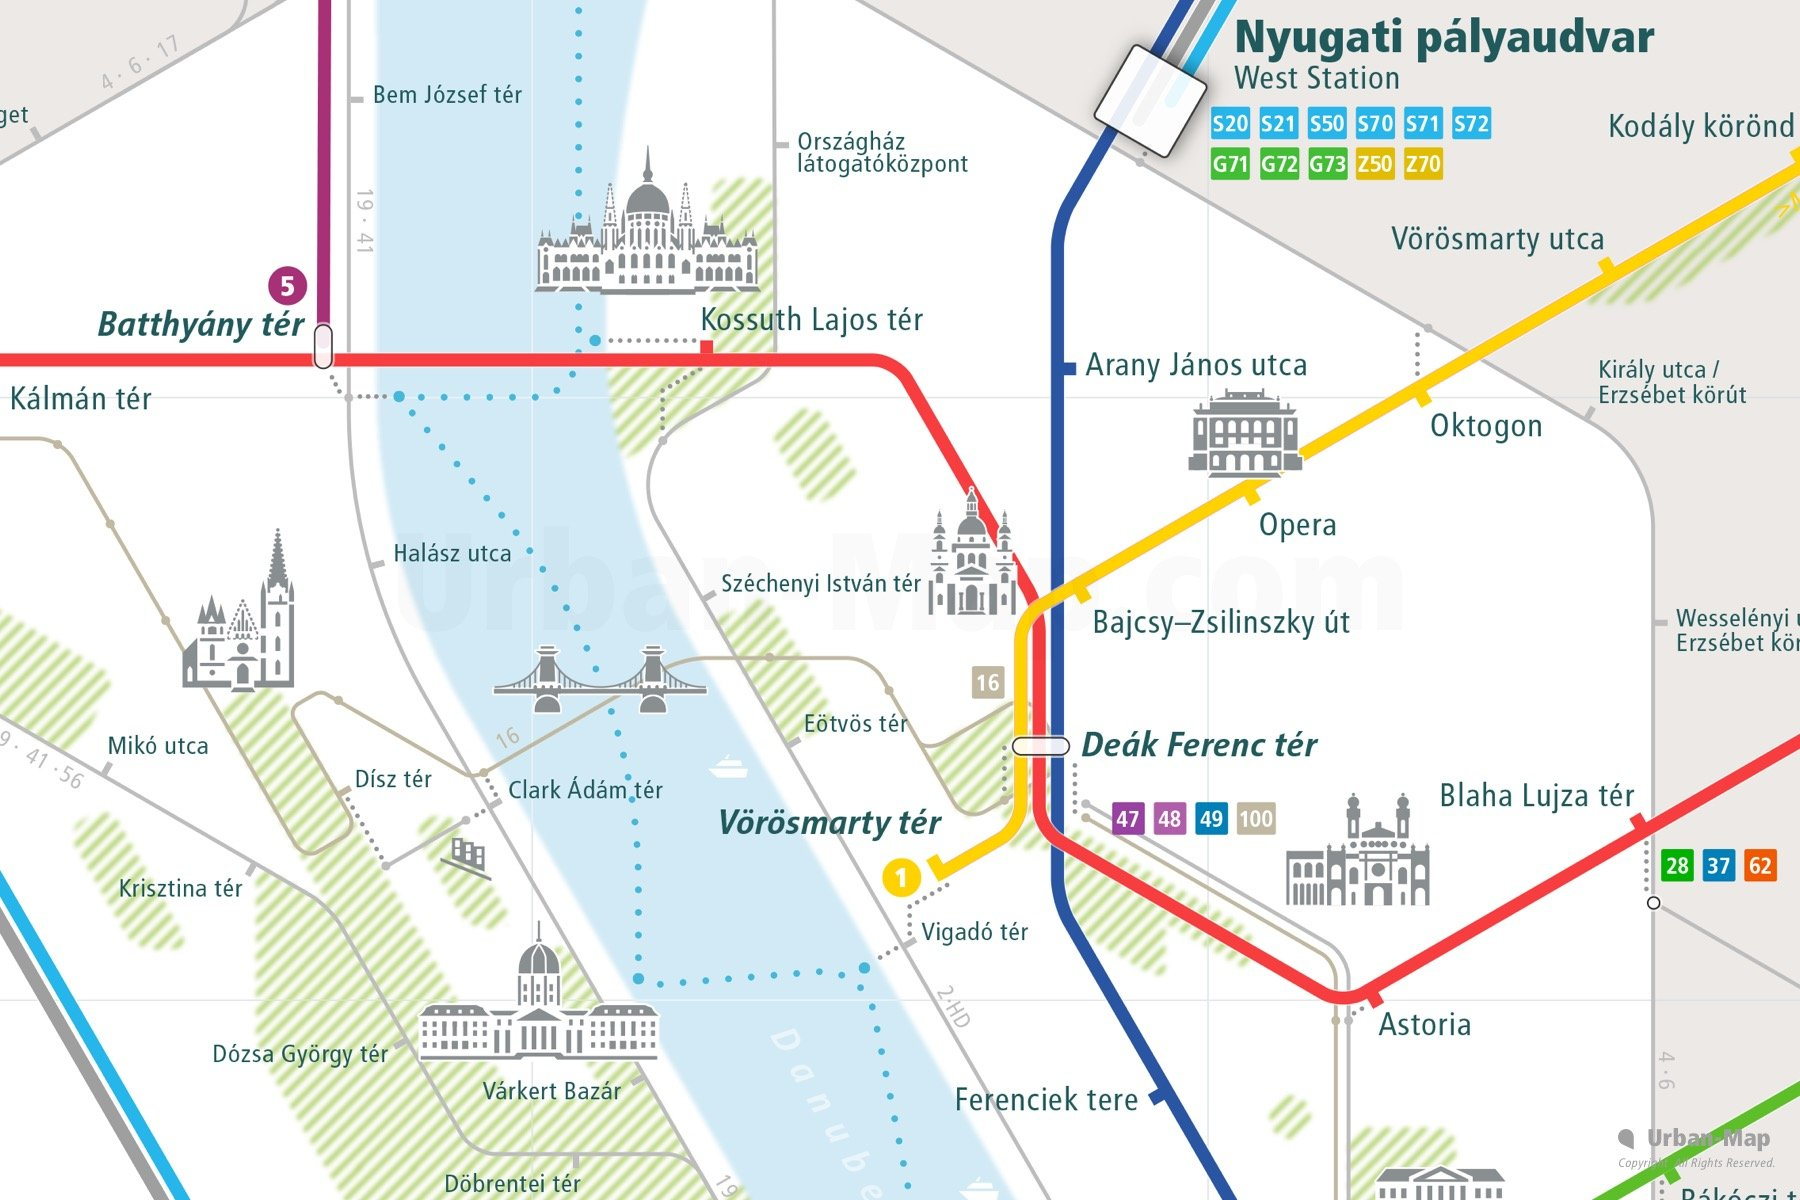 Budapest City Rail Map shows the train and public transportation routes of metro, tram, ferry, funicular - Close-up